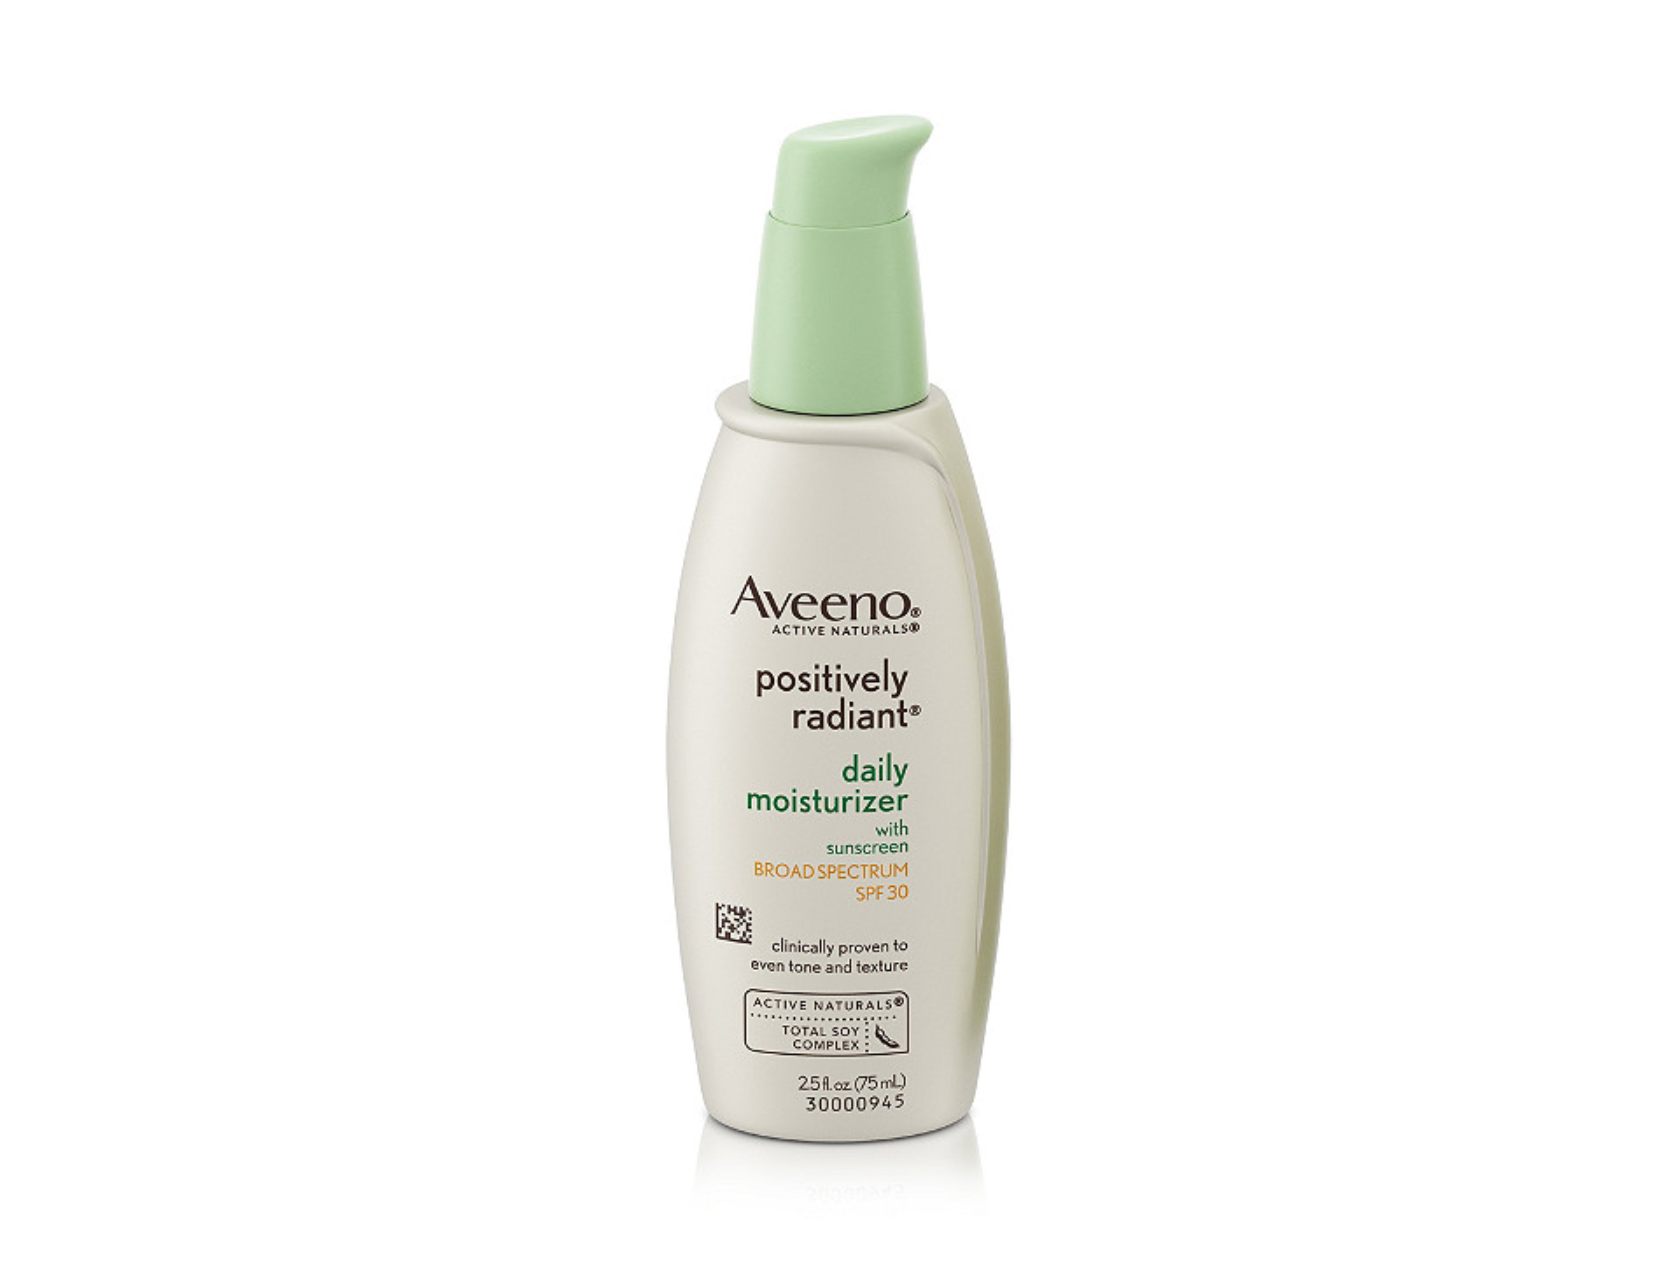 RX_1903 Best Suncreens_Aveeno Positively Radiant Daily Moisturizer SPF 30